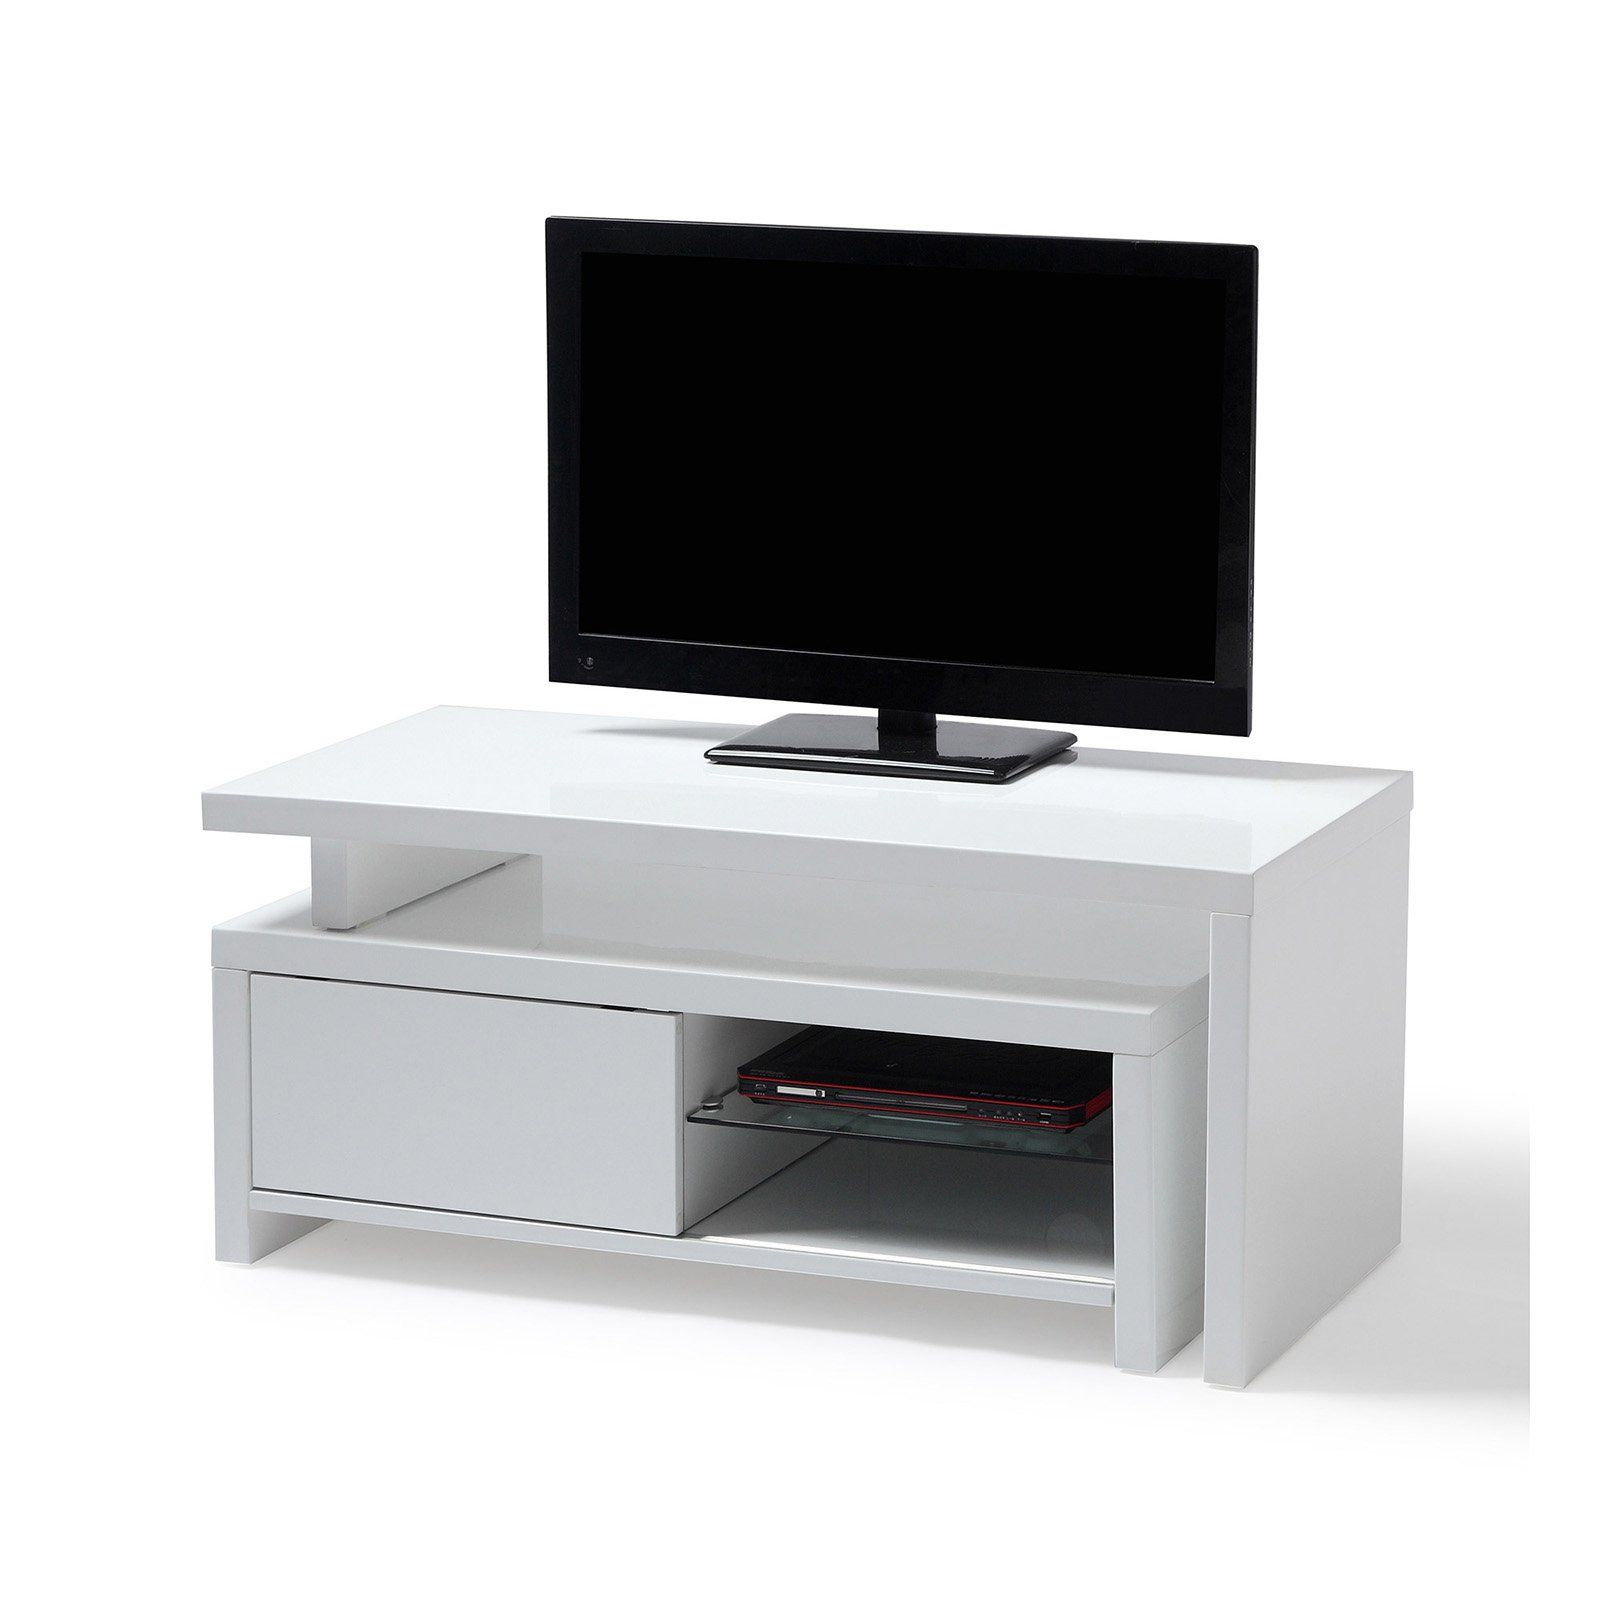 Francodim Francisco Tv Unit Products In 2019 Tv Unit Game - Meuble Tv Mobel Martin